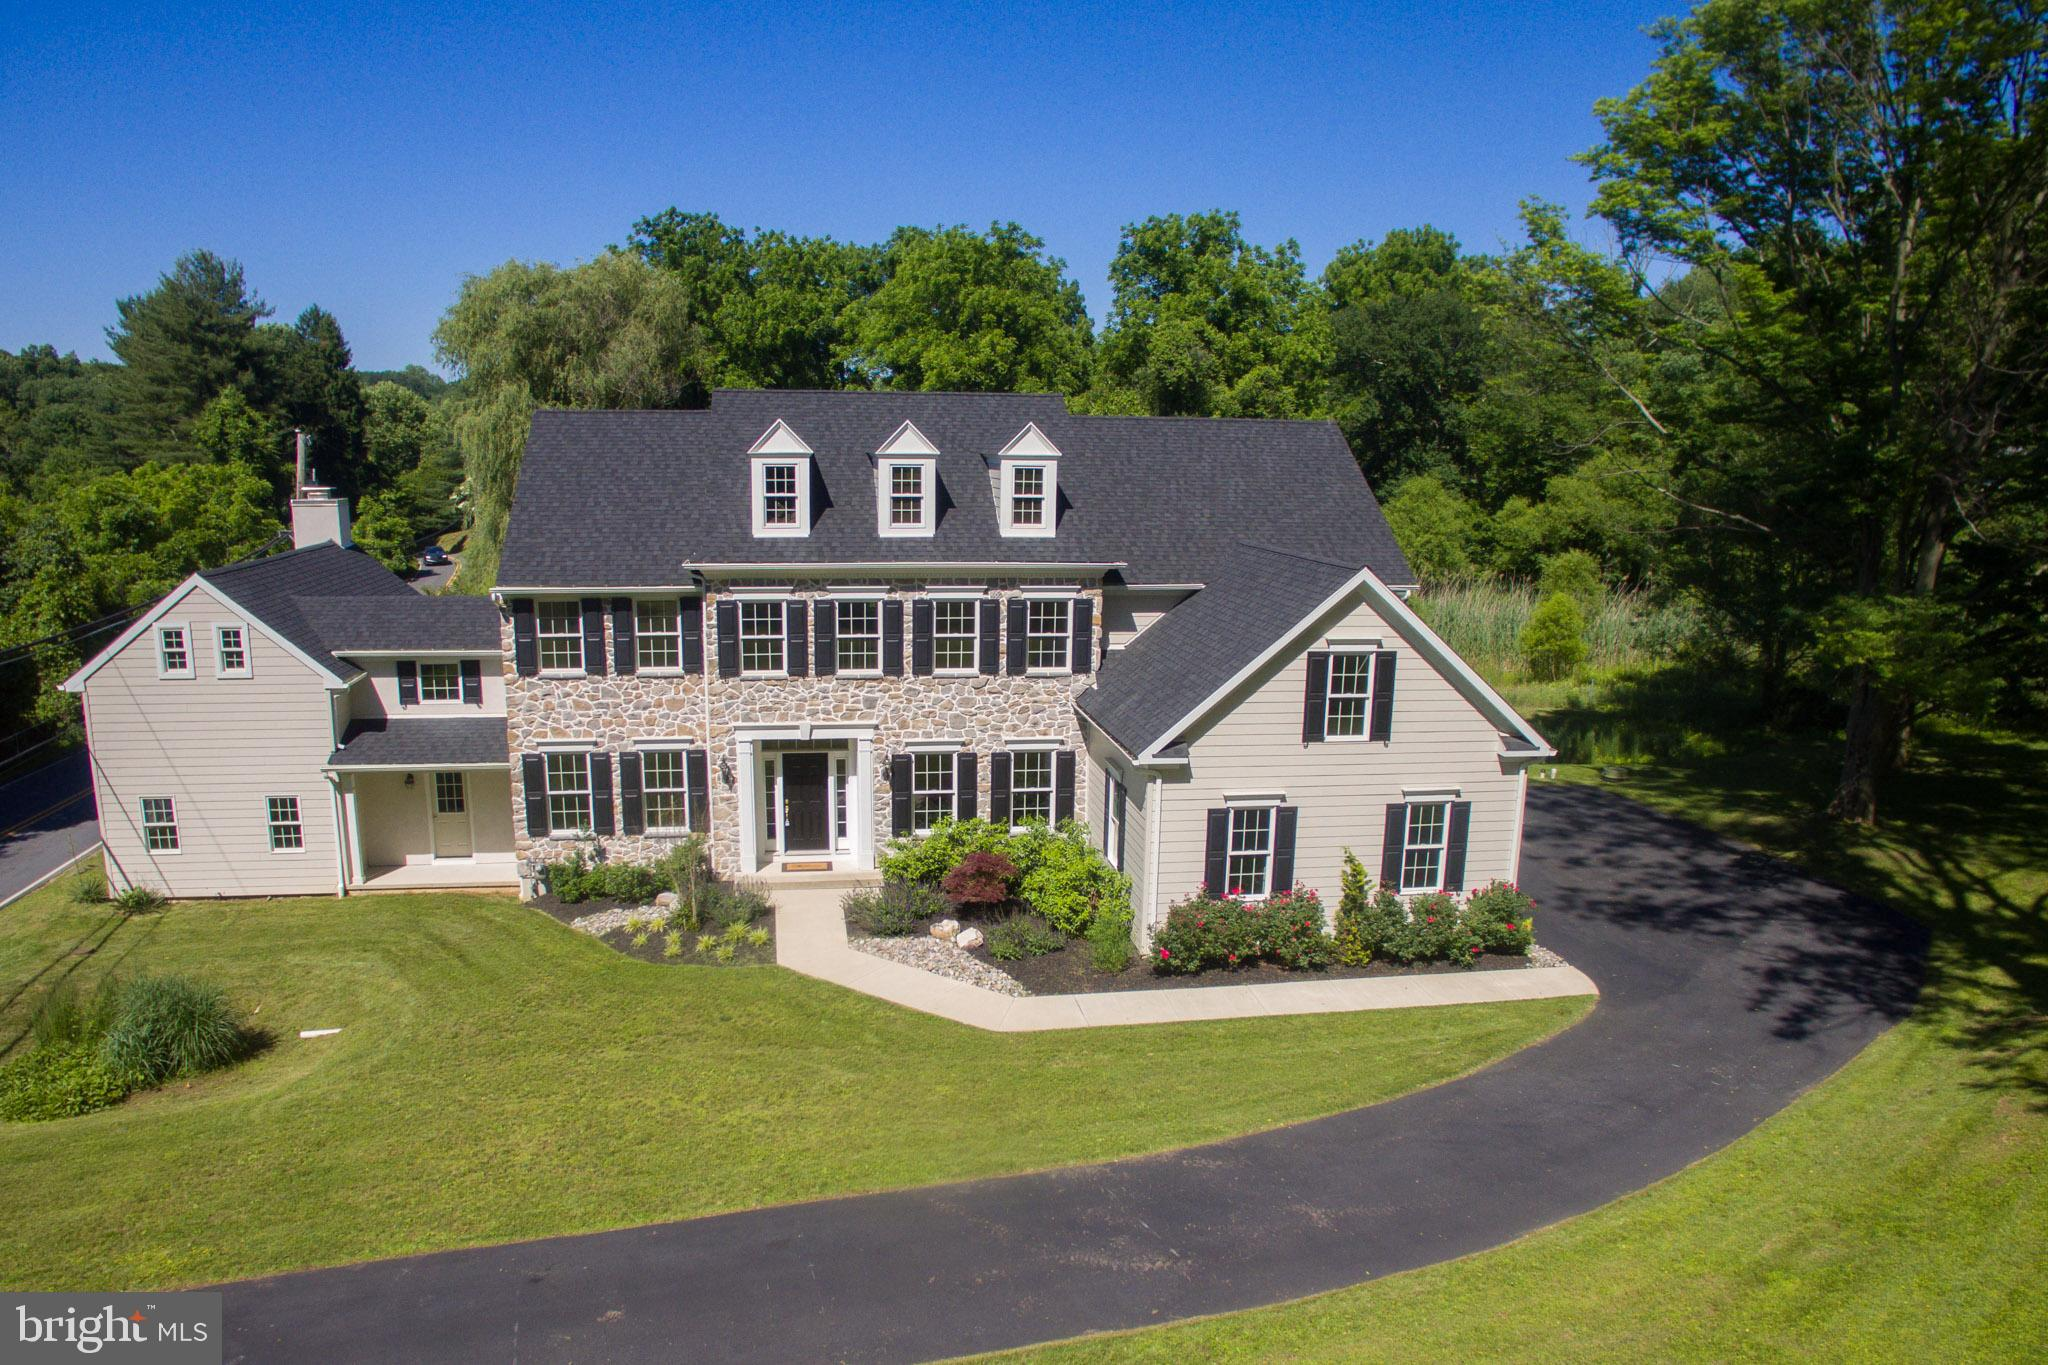 A spectacular, exquisitely executed custom built home preserving the charm of a 138 year old farmhouse while offering generous luxurious amenities of new construction. The majestic, distinguished exterior is accomplished by a striking stone front, accented by hardi plank siding. A premier location delivers access to the top-rated TE schools & close proximity to the Paoli train, all major routes, Chester Valley Trail, historic Valley Forge Park, the King of Prussia Mall plus diverse shops & restaurants of the Main Line. A grand entry foyer has hardwood floors, a turned center staircase & ample natural light afforded by its open flow into the formal living room on the left and the formal dining room on the right. You'll love the gourmet kitchen with high-end granite counters, maple cream color cabinets with soft-close drawers & doors, a center island with contrasting cherry chocolate finish, Bosch stainless steel appliances, and a 2-story dining area adjacent to a nice sunroom with cathedral ceiling & access to the yard. There's also a large walk-in pantry just off the kitchen. The family room has a gas fireplace flanked by large circle top windows. There are 9 ft ceilings on the 1st level, and a powder room, laundry & office. Retreat to your restful master suite with separate sitting area & a massive walk-in closet with his & her entry & 2 skylights. The tastefully stylish master bath has a double-bowl vanity with Carrera marble vanity top, a walk-in shower with frameless glass shower door & coordinating Carrera tiles that wrap around the luxurious soaking tub. 2 of the 3 additional bedrooms share a Jack & Jill bath with a comfort height vanity with unhoned Carrera marble top, 12x12 ceramic tile floor coordinating with the walk-in shower floor & walls, and a linen closet. The hall bath has a comfort height vanity with unhoned Carrera marble top and 12x12 marble floors that coordinate with the walk in shower. A nice size landing on this level is pre-wired for cable, m